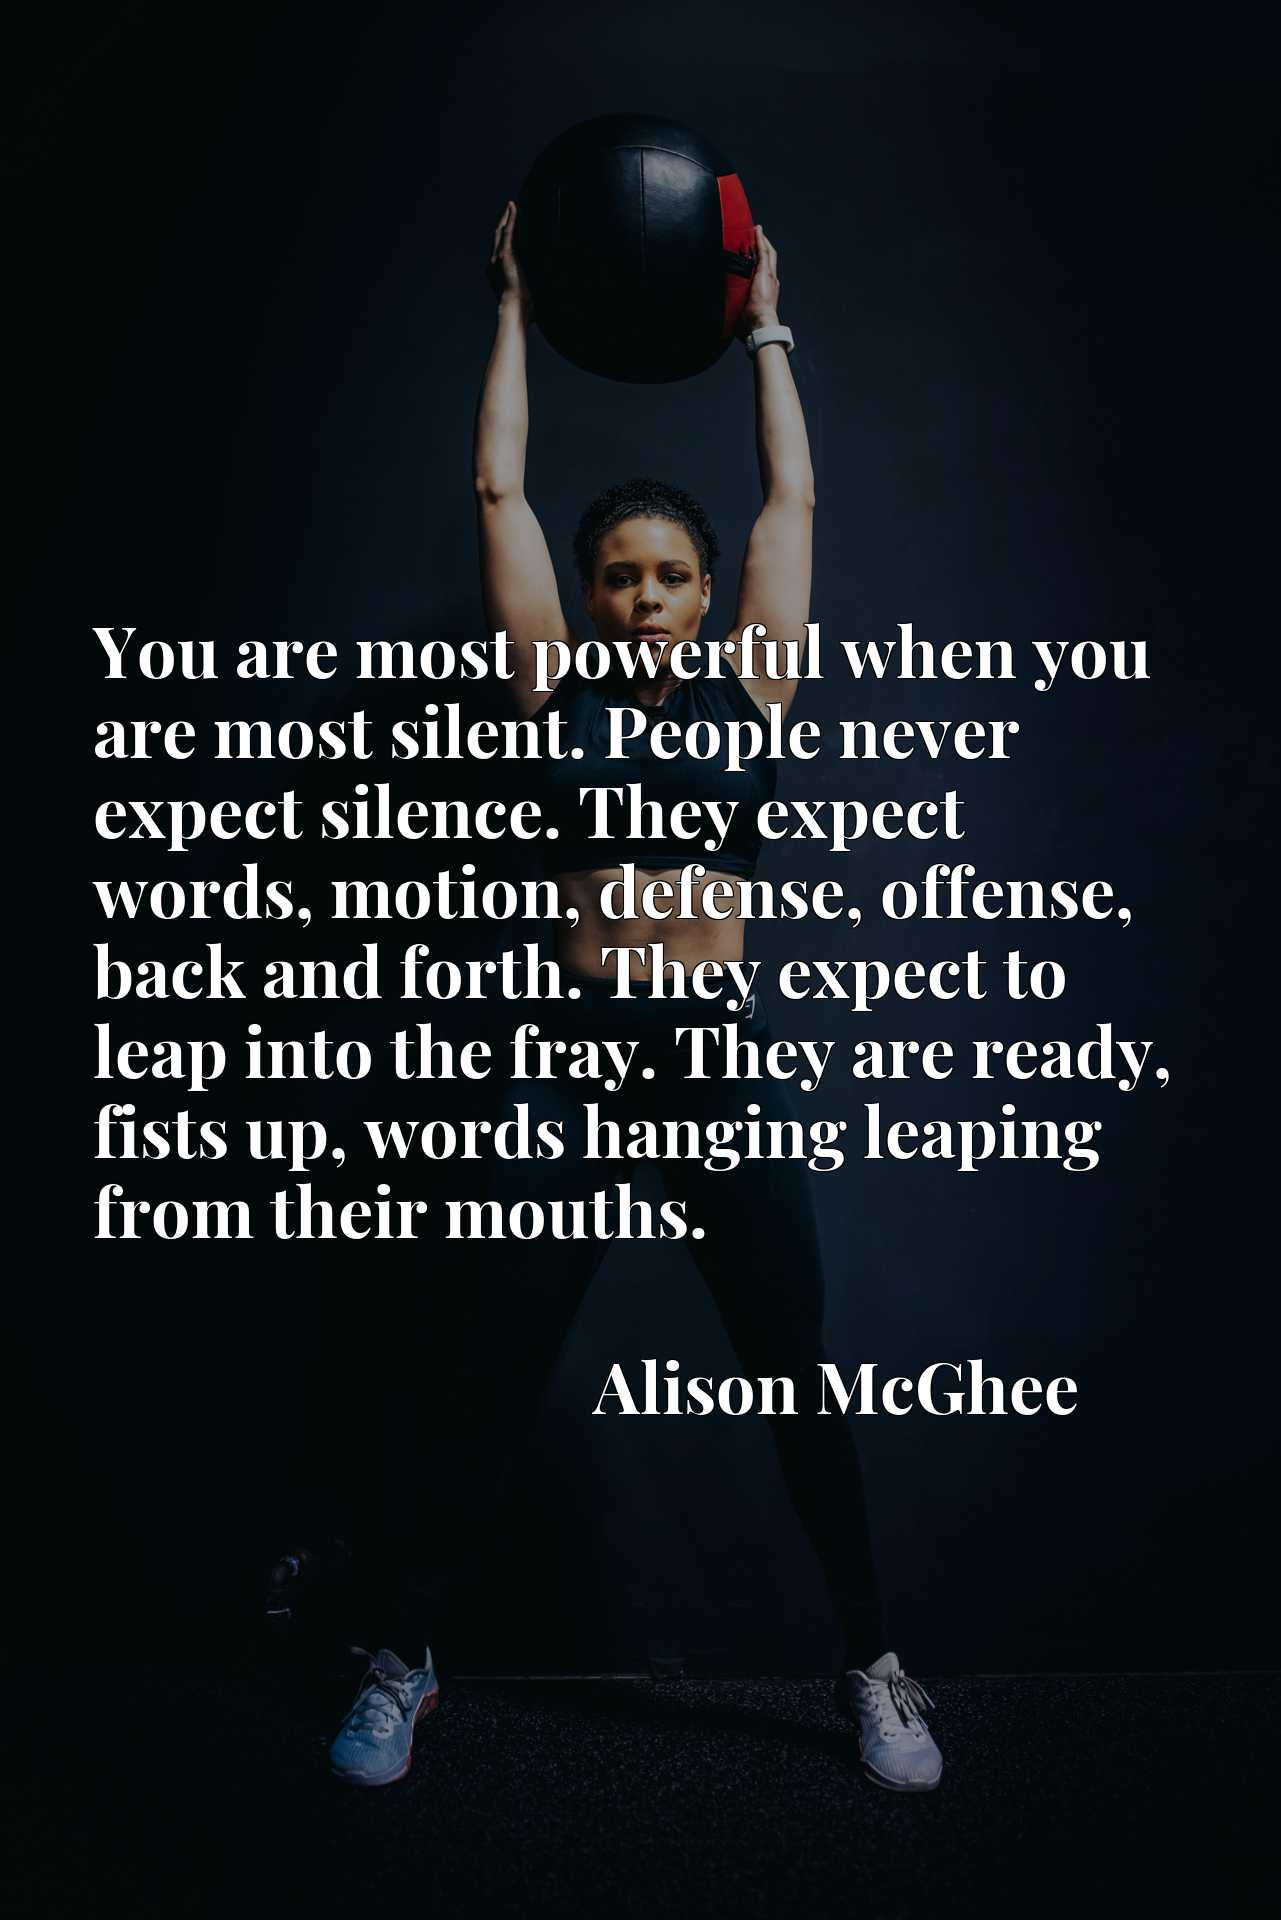 You are most powerful when you are most silent. People never expect silence. They expect words, motion, defense, offense, back and forth. They expect to leap into the fray. They are ready, fists up, words hanging leaping from their mouths.